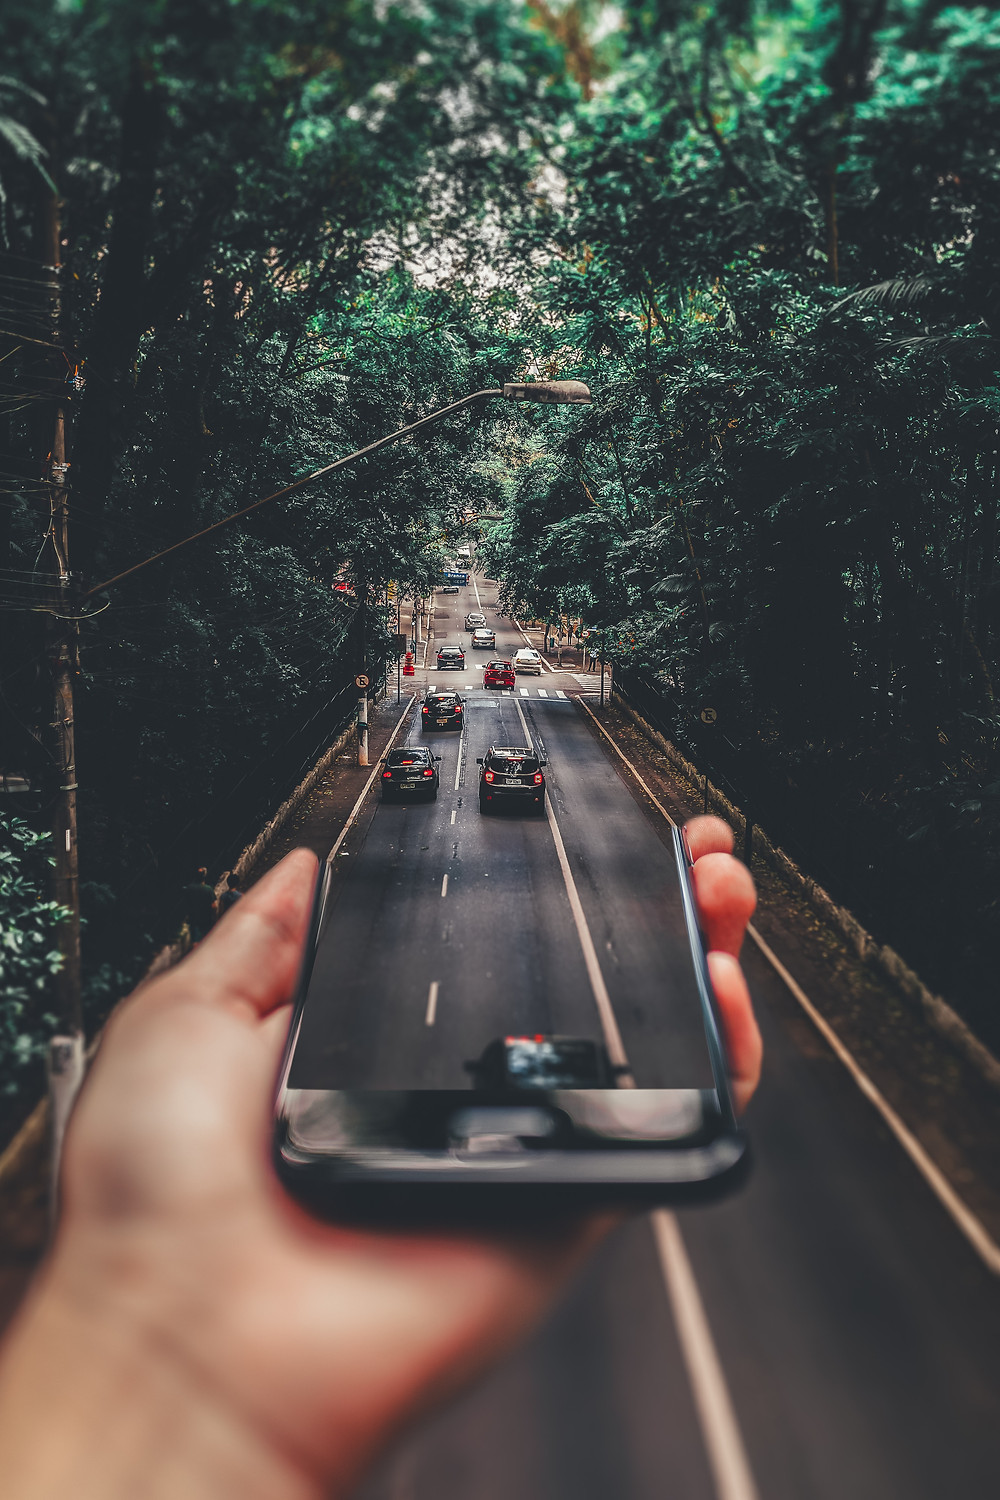 forced-perspective-photography-of-cars-running-on-road-below-799443